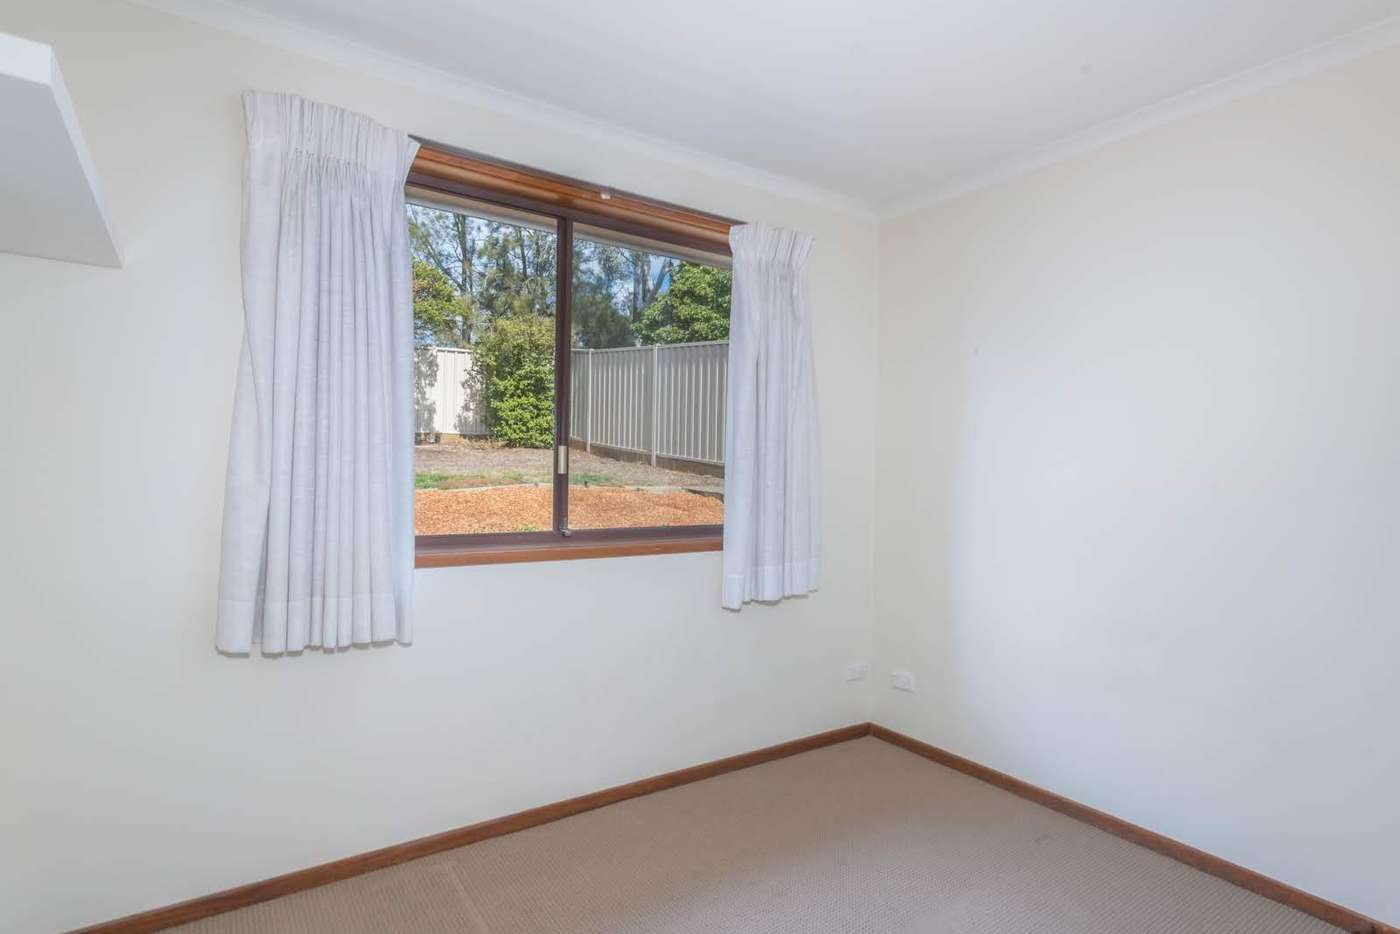 Seventh view of Homely townhouse listing, 32 Evergood Street, Weston ACT 2611